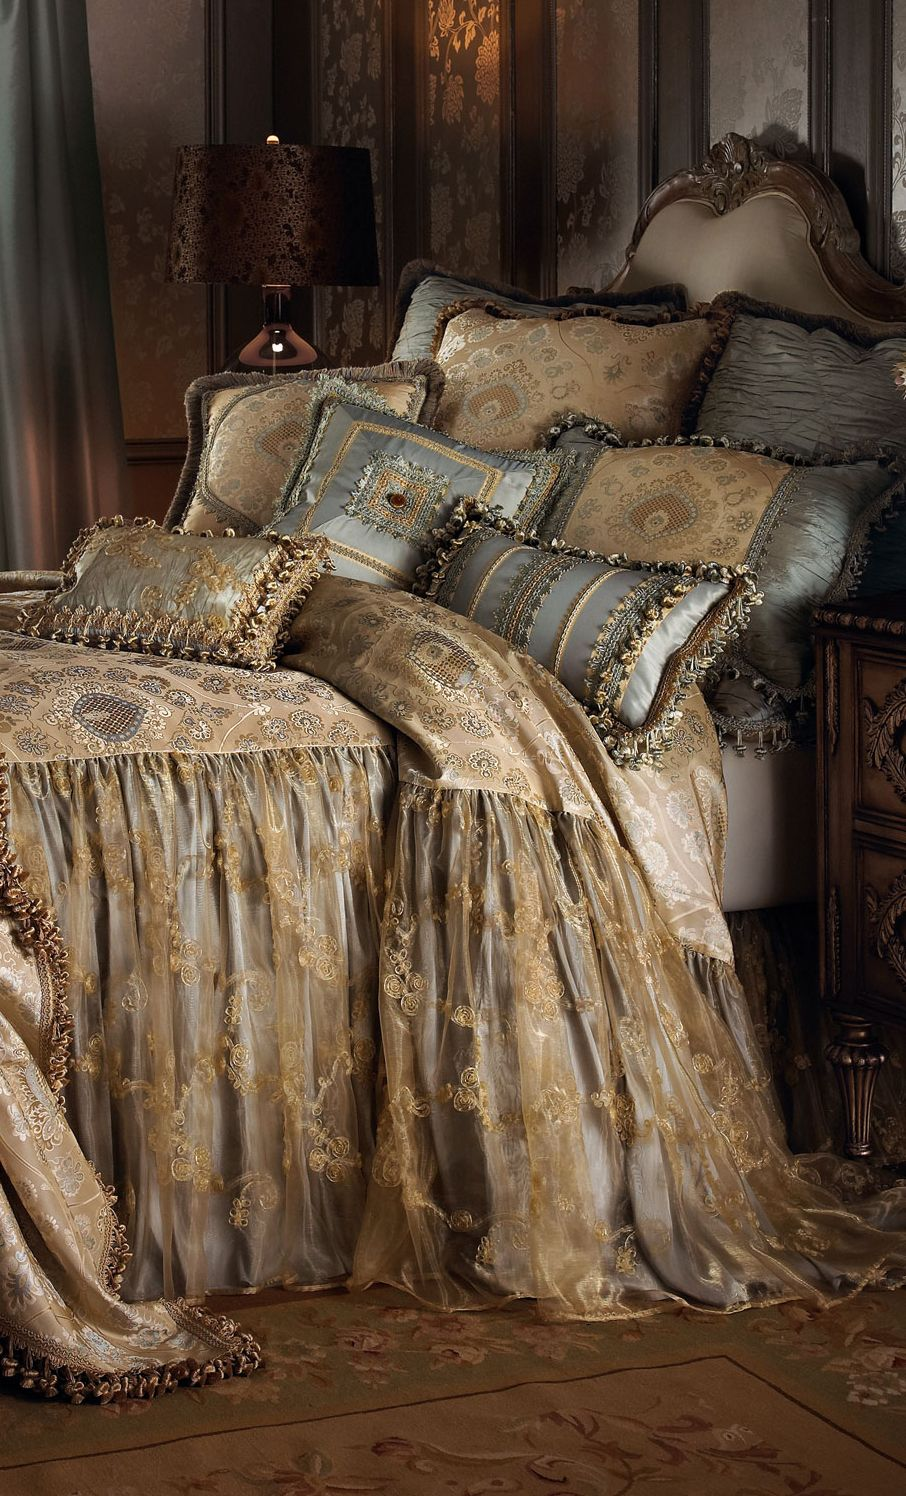 Bed And Bath Bedding Bedroom Decor Luxury Bedding